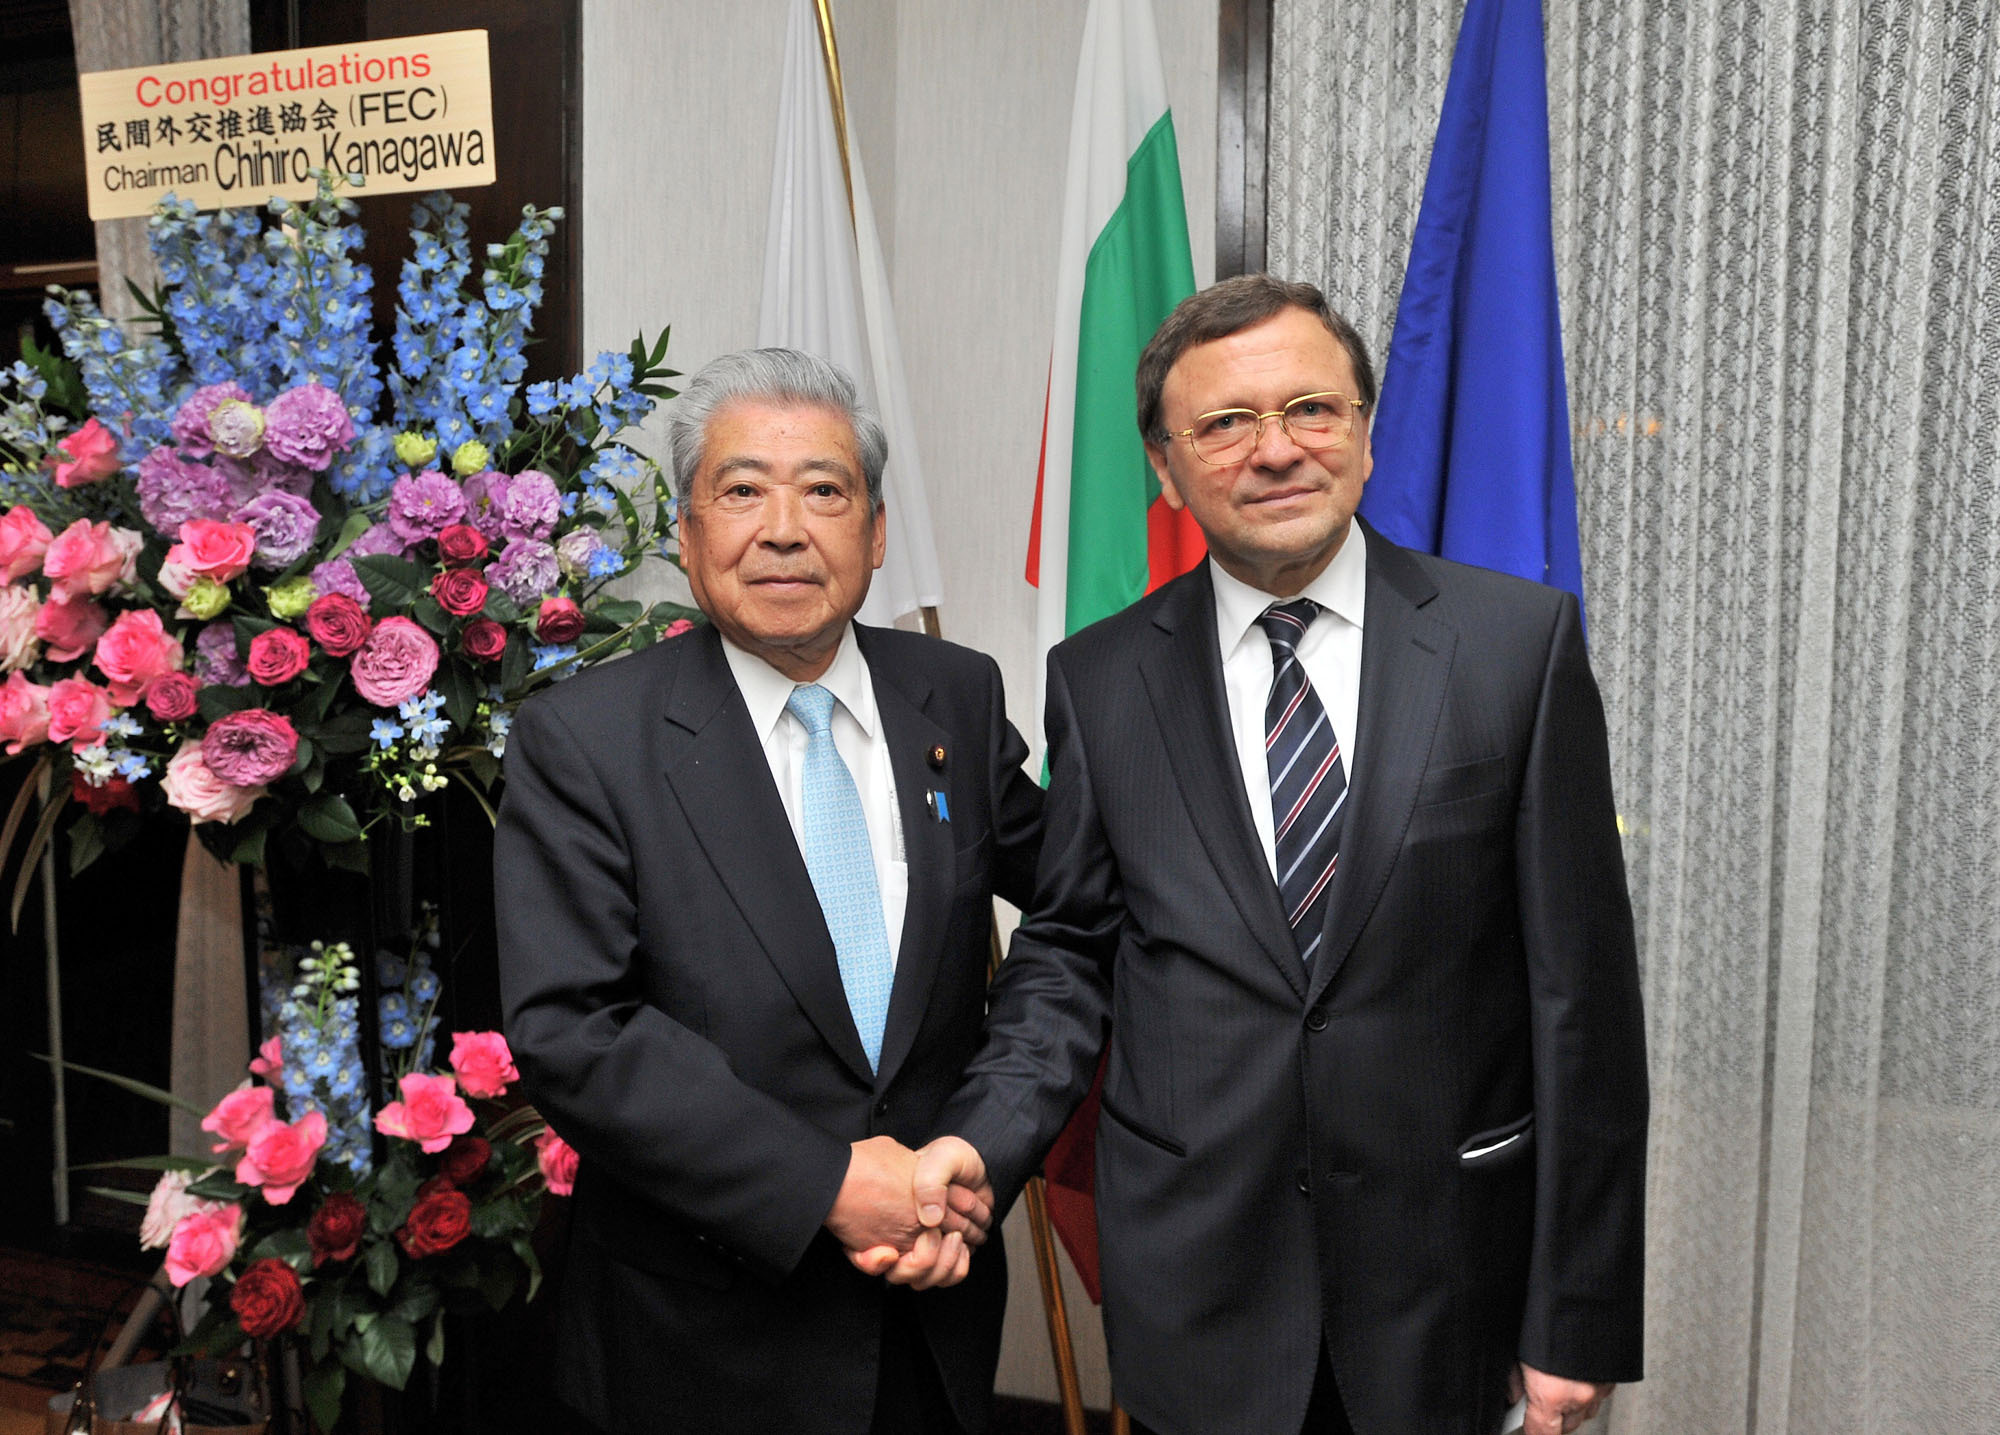 Bulgaria's Ambassador Borislav Kostov (right) shakes hands with  President of the House of Councillors and member of the Japan-Bulgaria Parliamentary Friendship League Chuichi Date during a reception to celebrate the March 3 national day of Bulgaria and cherry blossom season at the embassy in Tokyo on March 30. |  YOSHIAKI MIURA